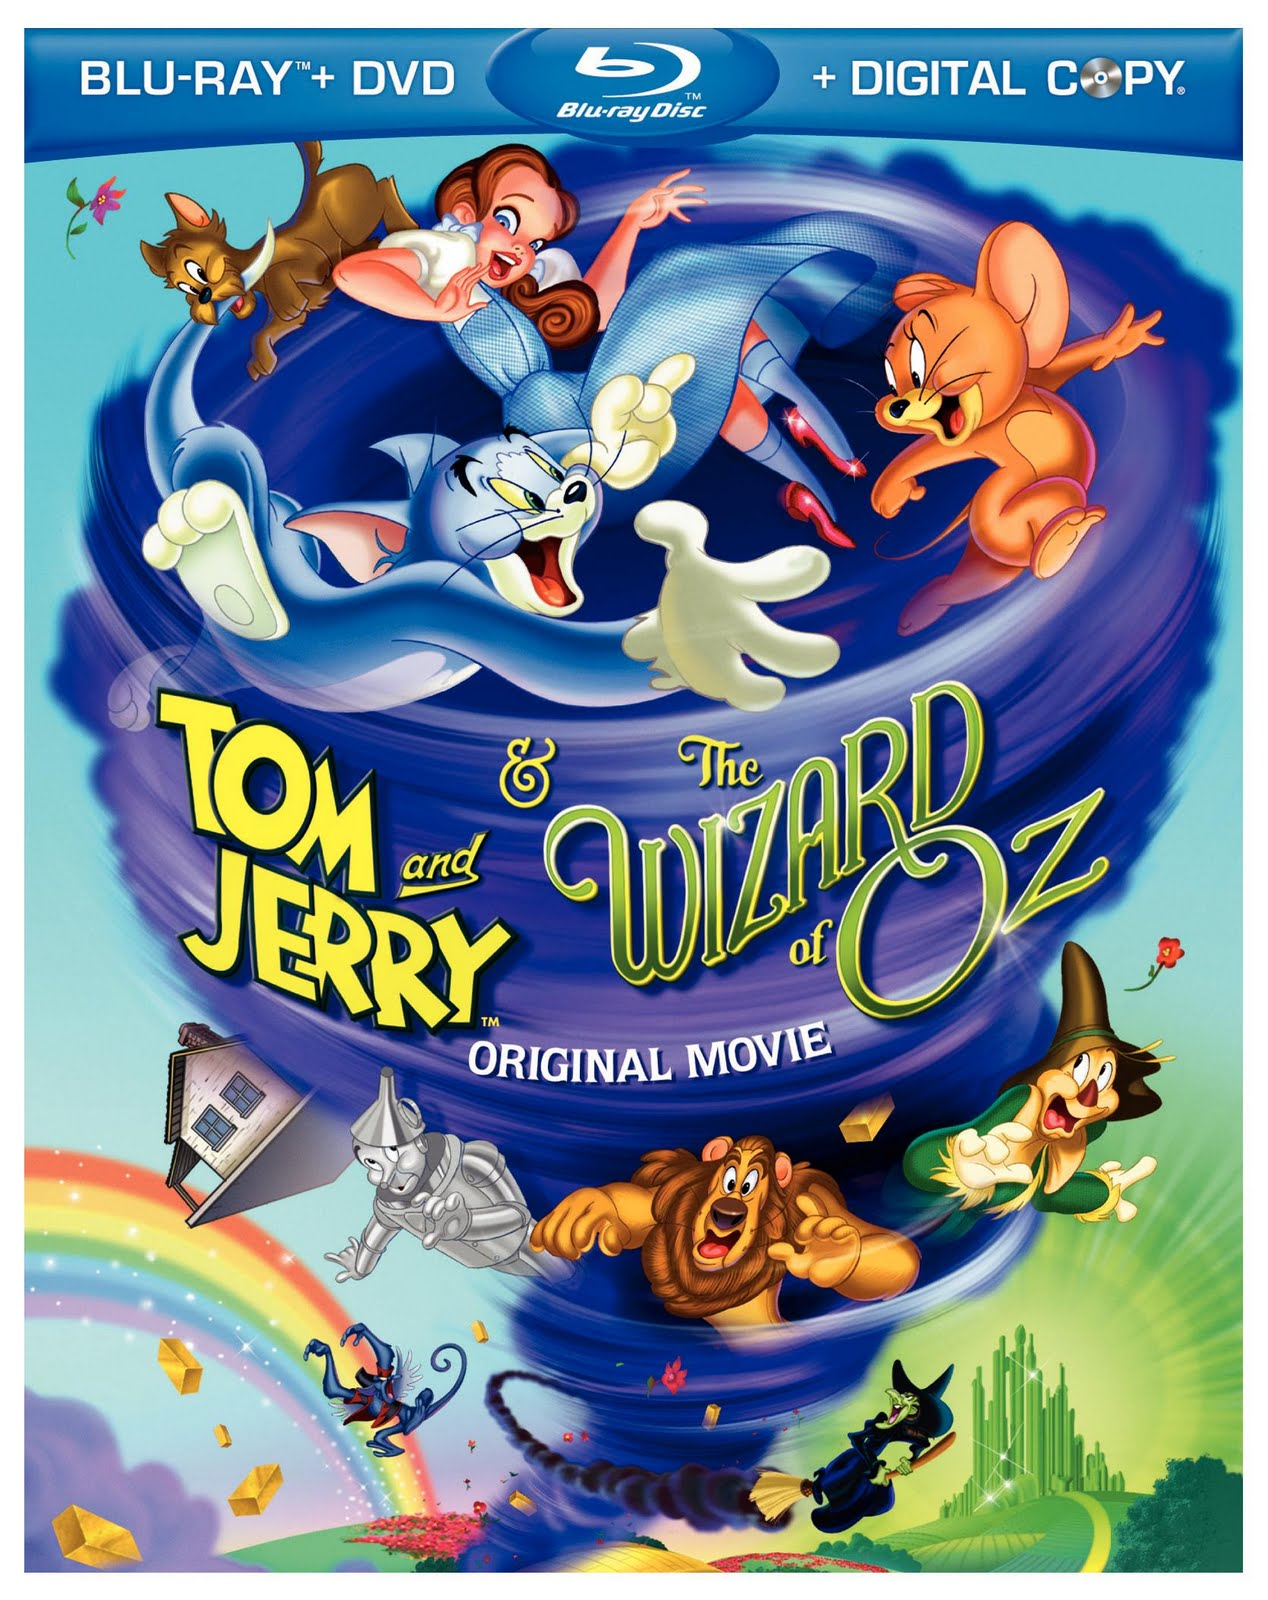 Tom and Jerry the Wizard of Oz (2011)